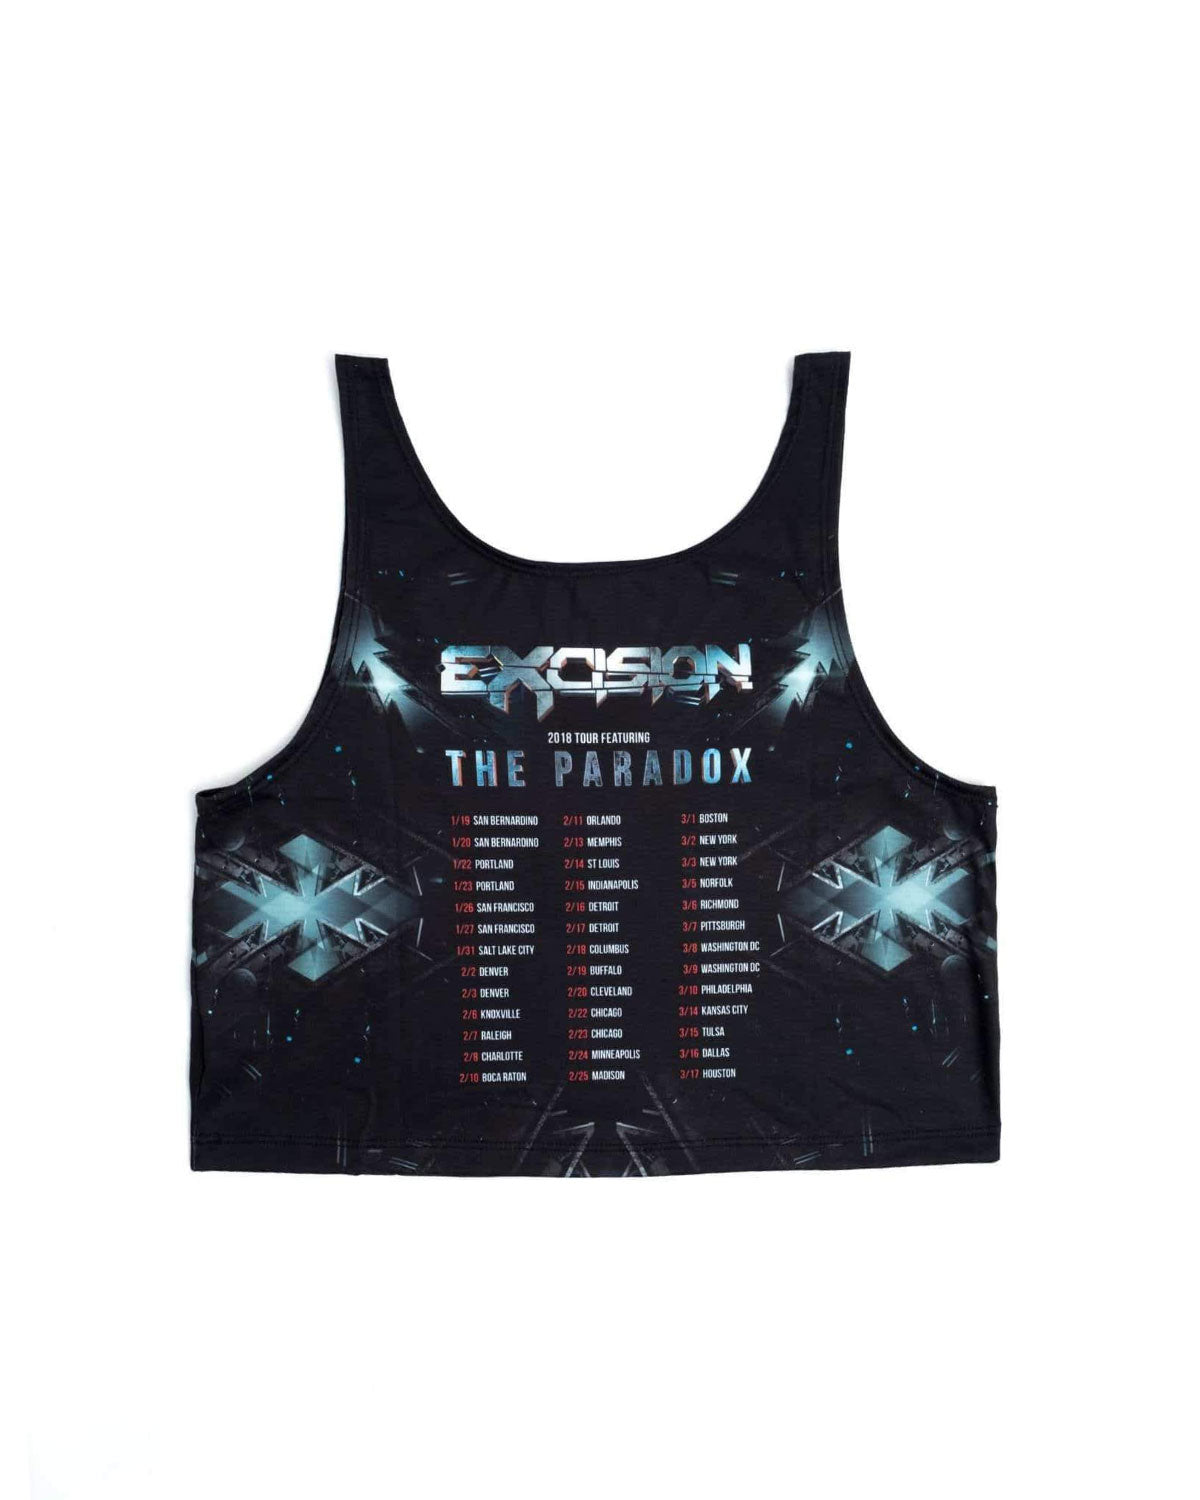 Excision 'The Paradox 2018 Tour' Womens Dye Sub Crop Top - Black/Grey